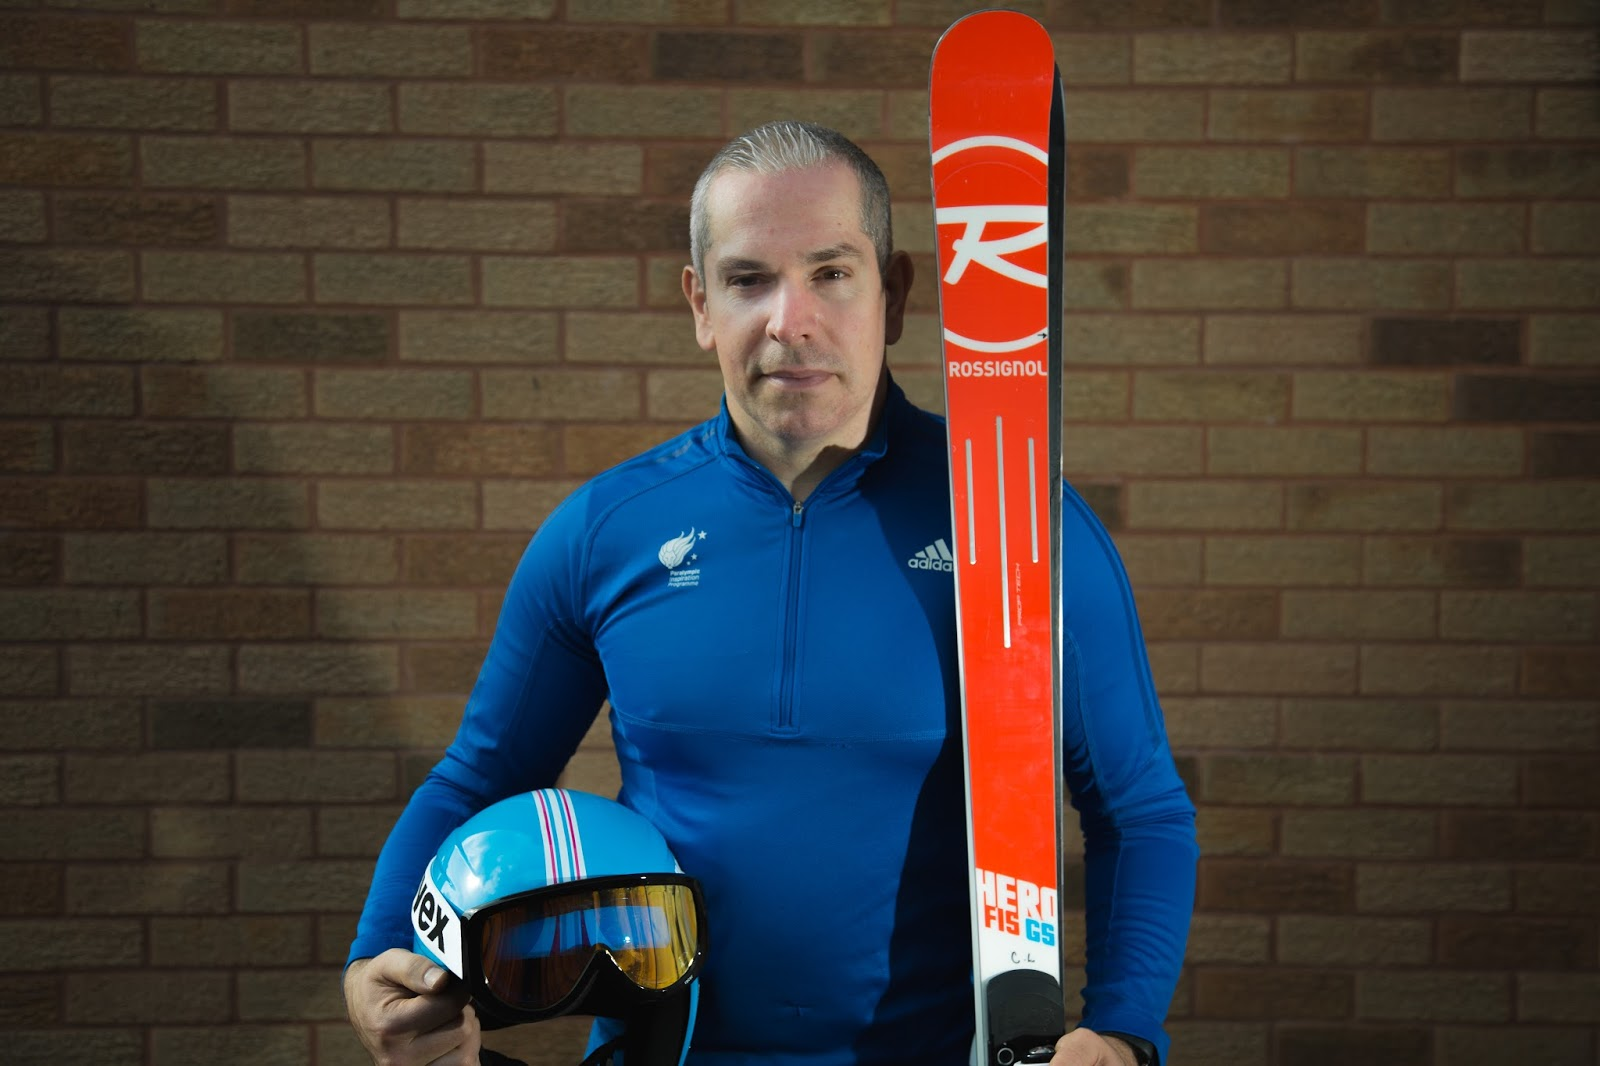 Man is looking at the camera wearing a blue ski suit, holding a blue helmet and red skis.